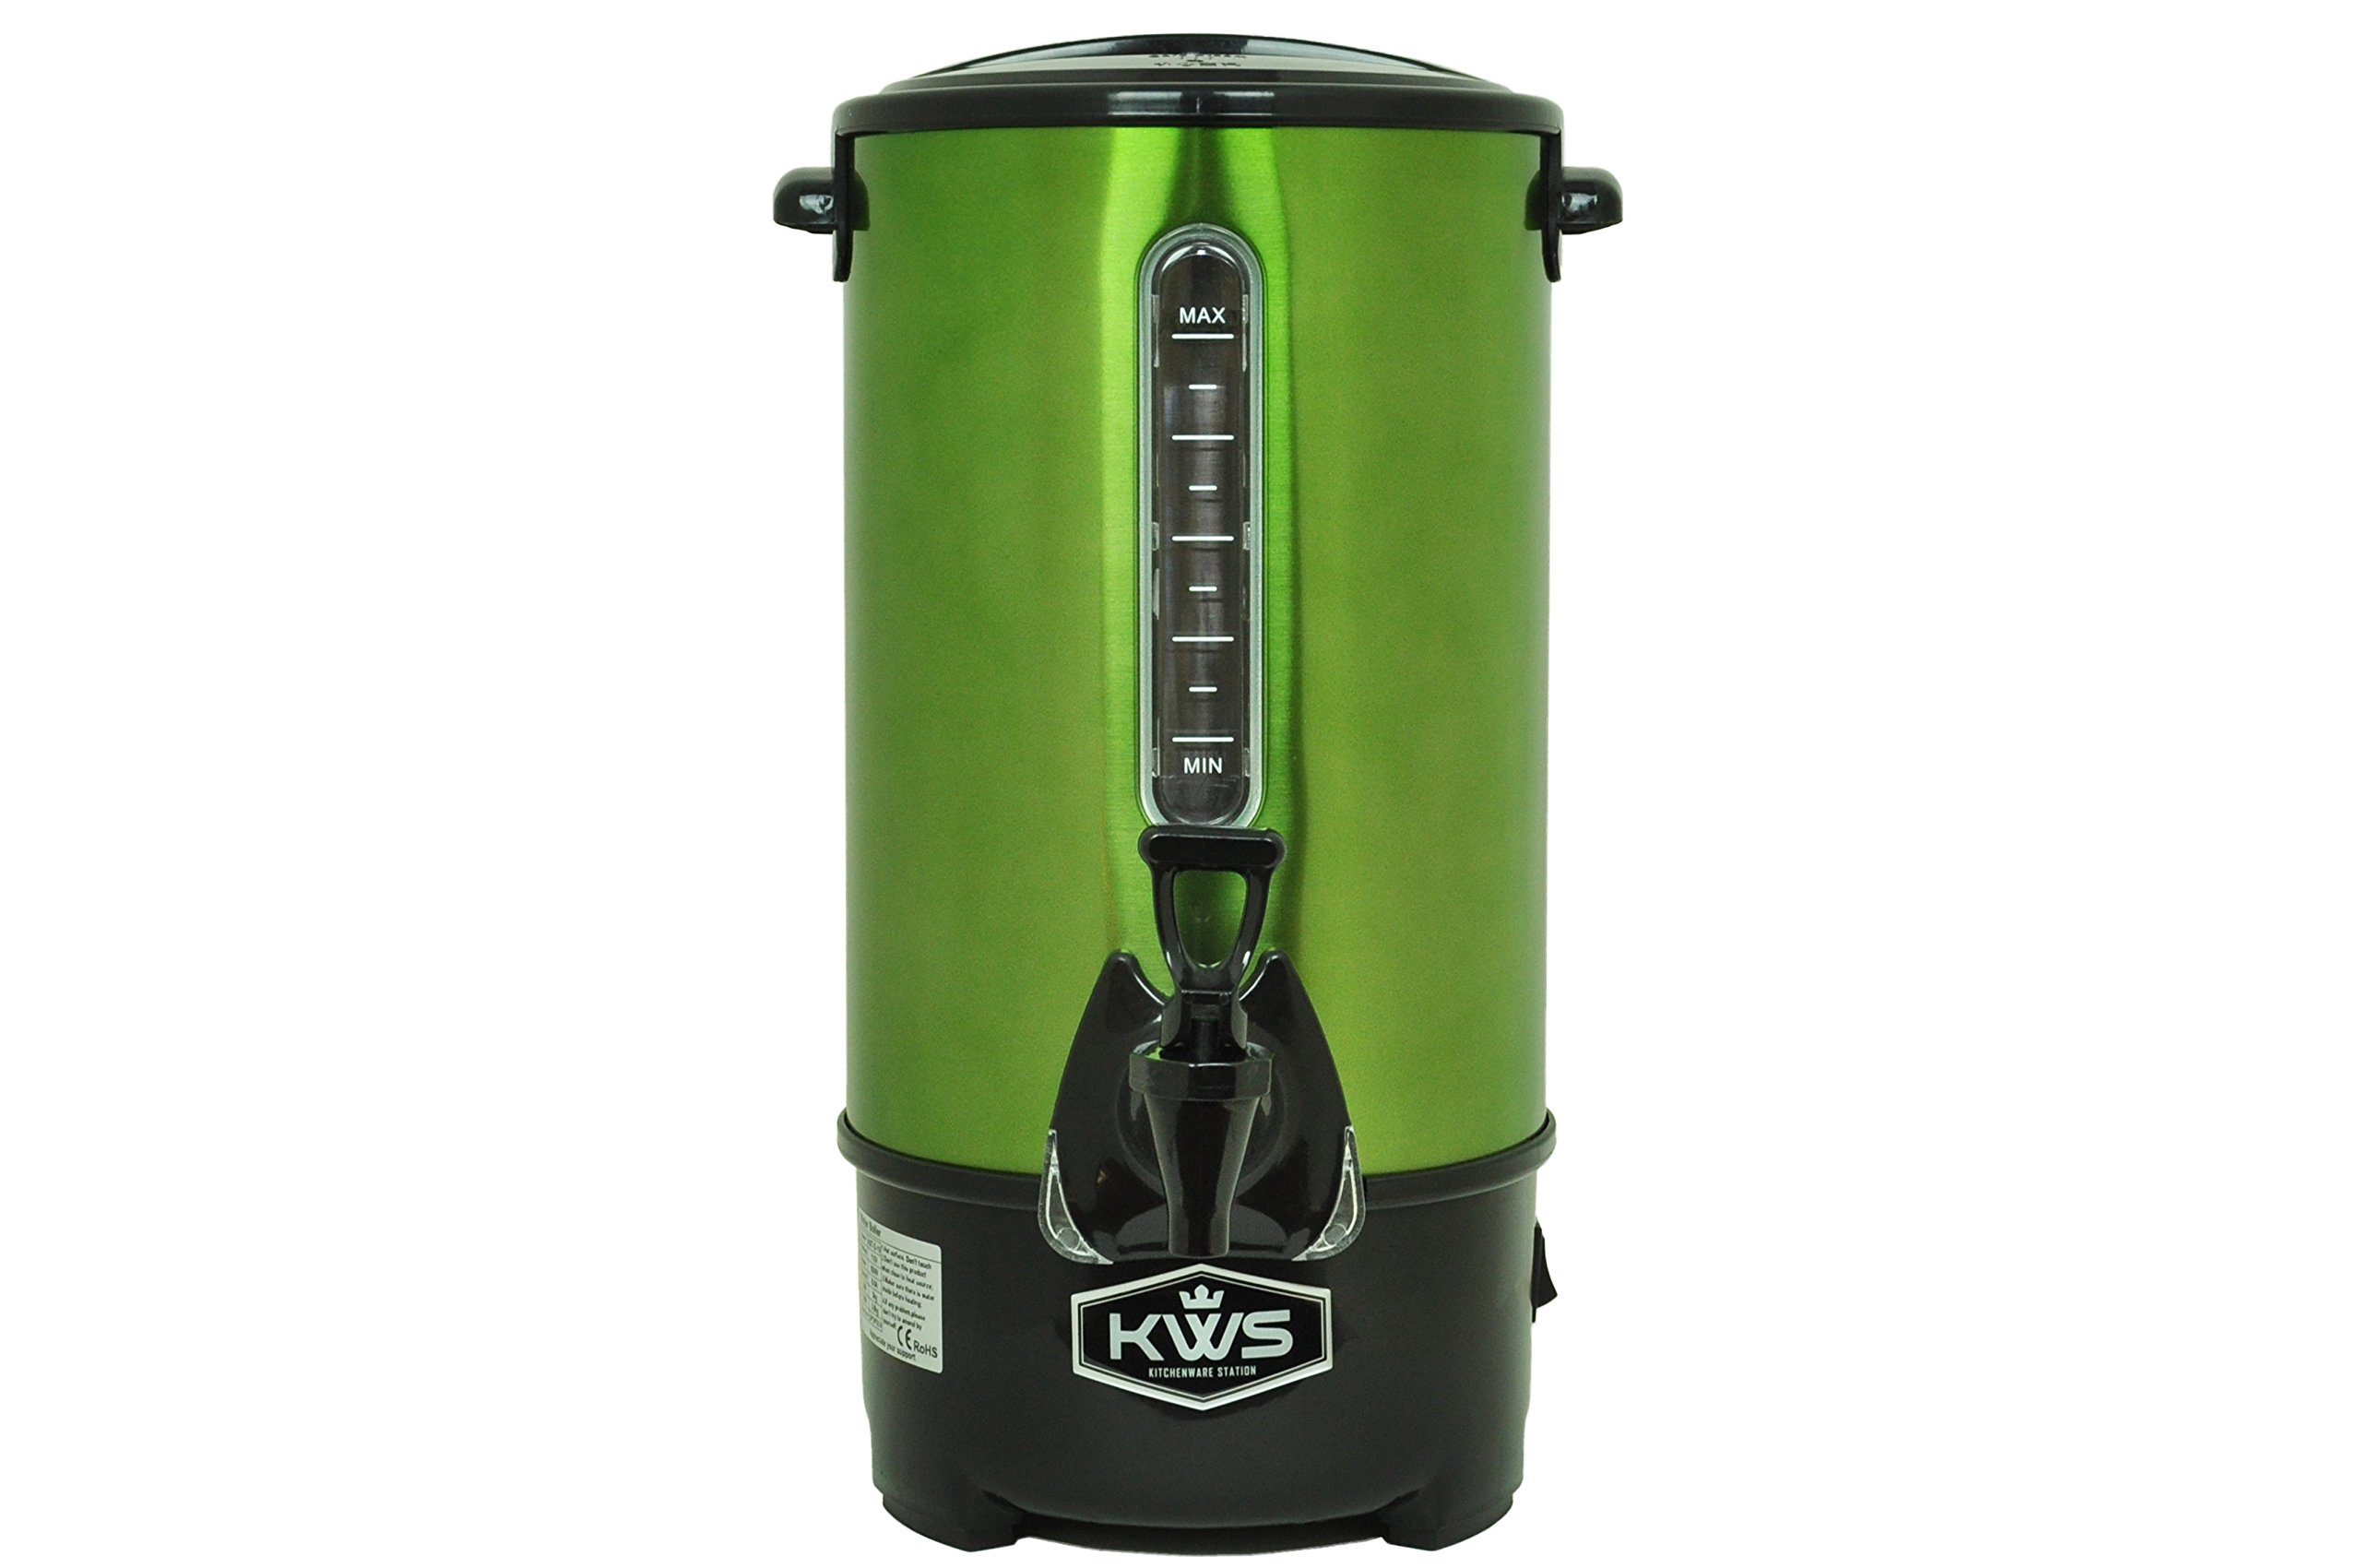 KWS WB-10 9.7L/41Cups Commercial Heat Insulated Water Boiler and Warmer Stainless Steel (Green) by KitchenWare Station (Image #1)